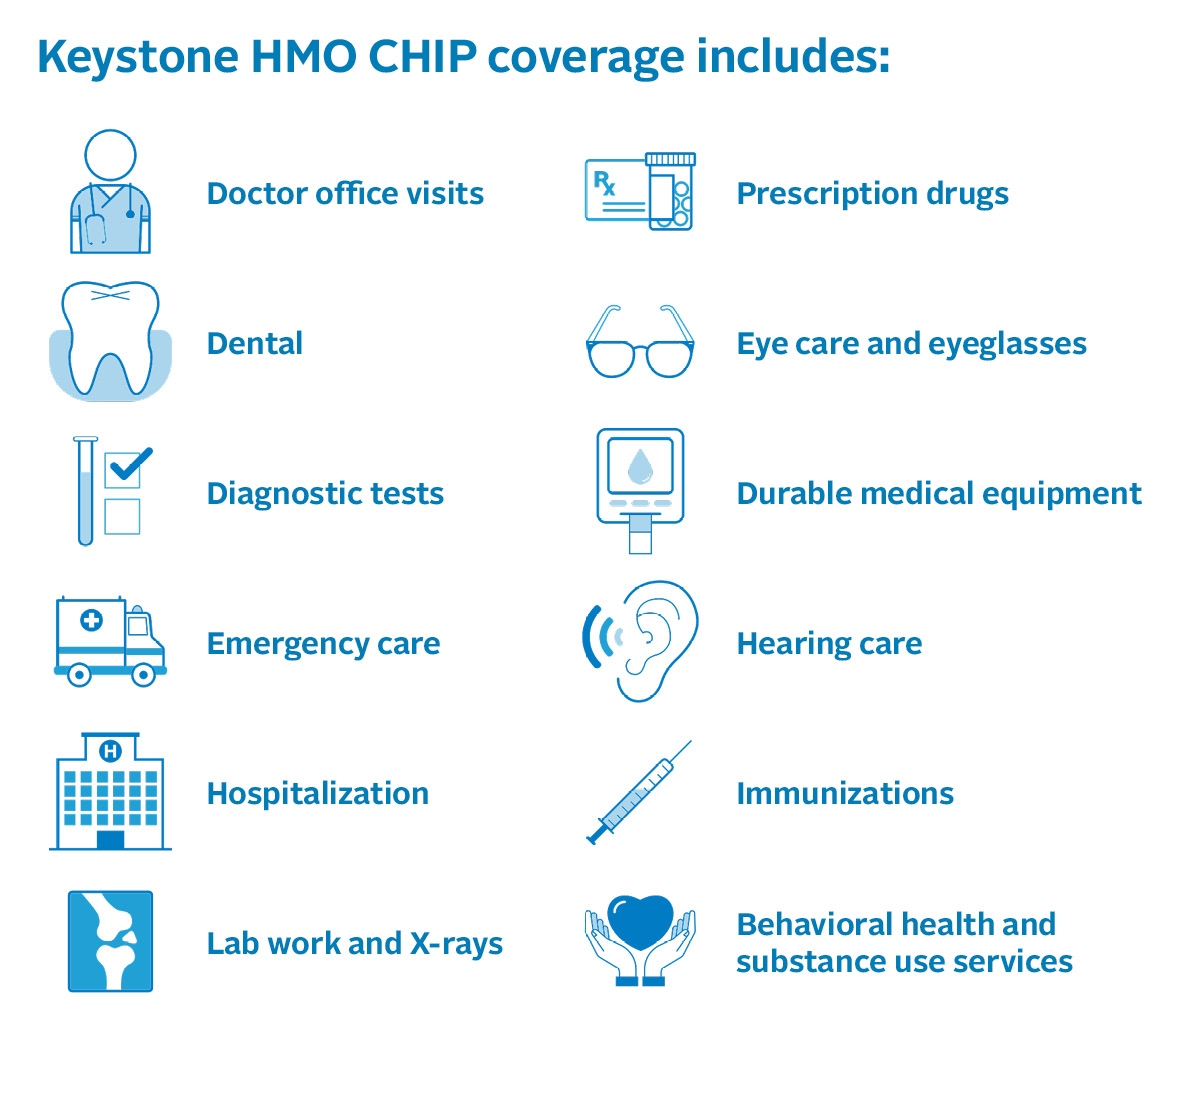 Chart of the benefits included with Keystone HMO CHIP coverage: Doctor office visits, dental, diagnostic tests, emergency care, hospitalization, lab work & X-rays, prescription drugs, eye care & eyeglasses, durable medical equipment, hearing care, immunizations, behavioral health & substance use services